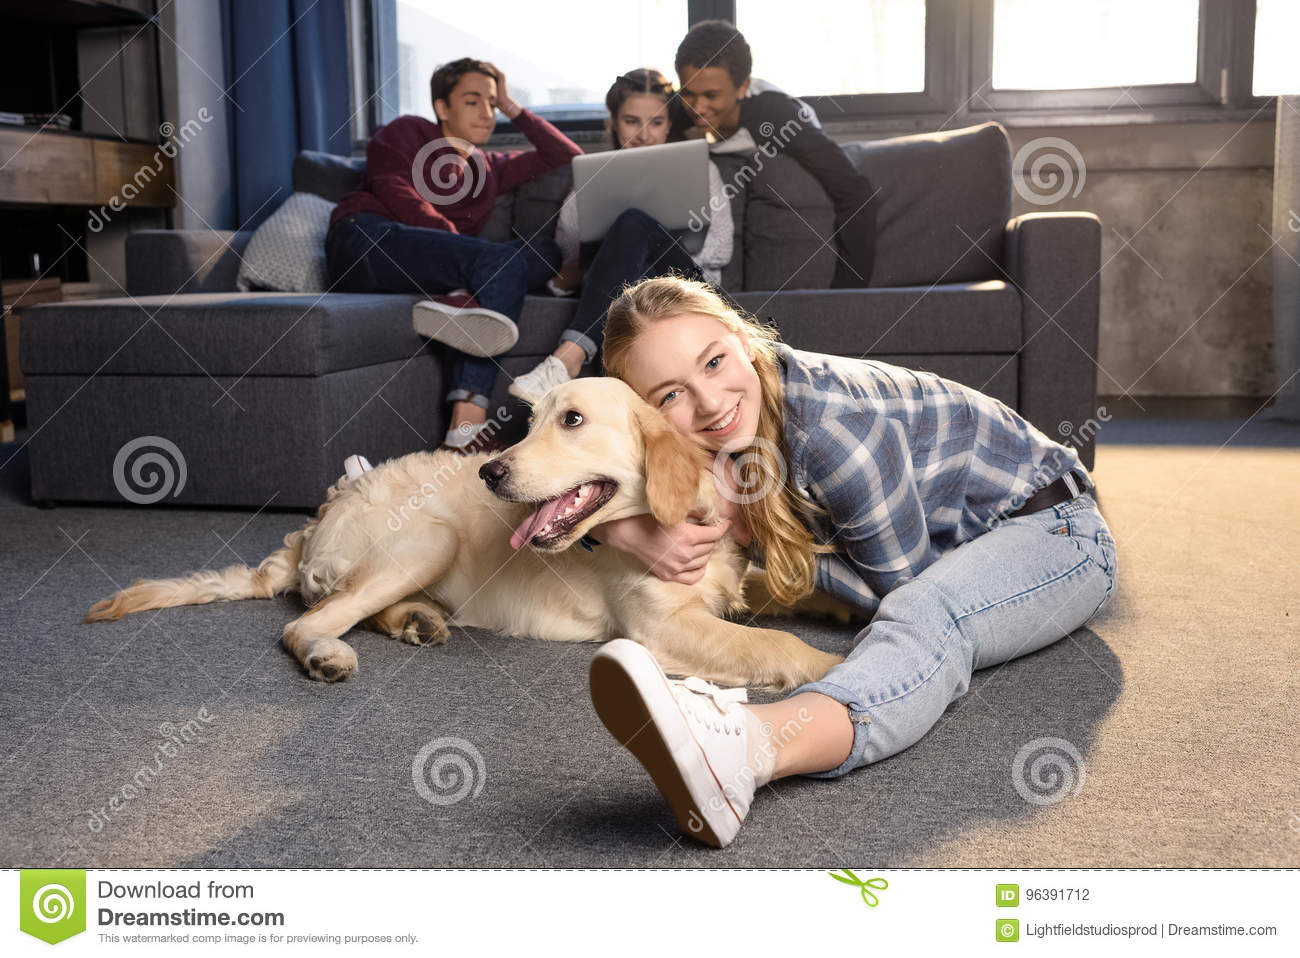 Teenage Girl Having Fun With Golden Retriever Dog While Friends